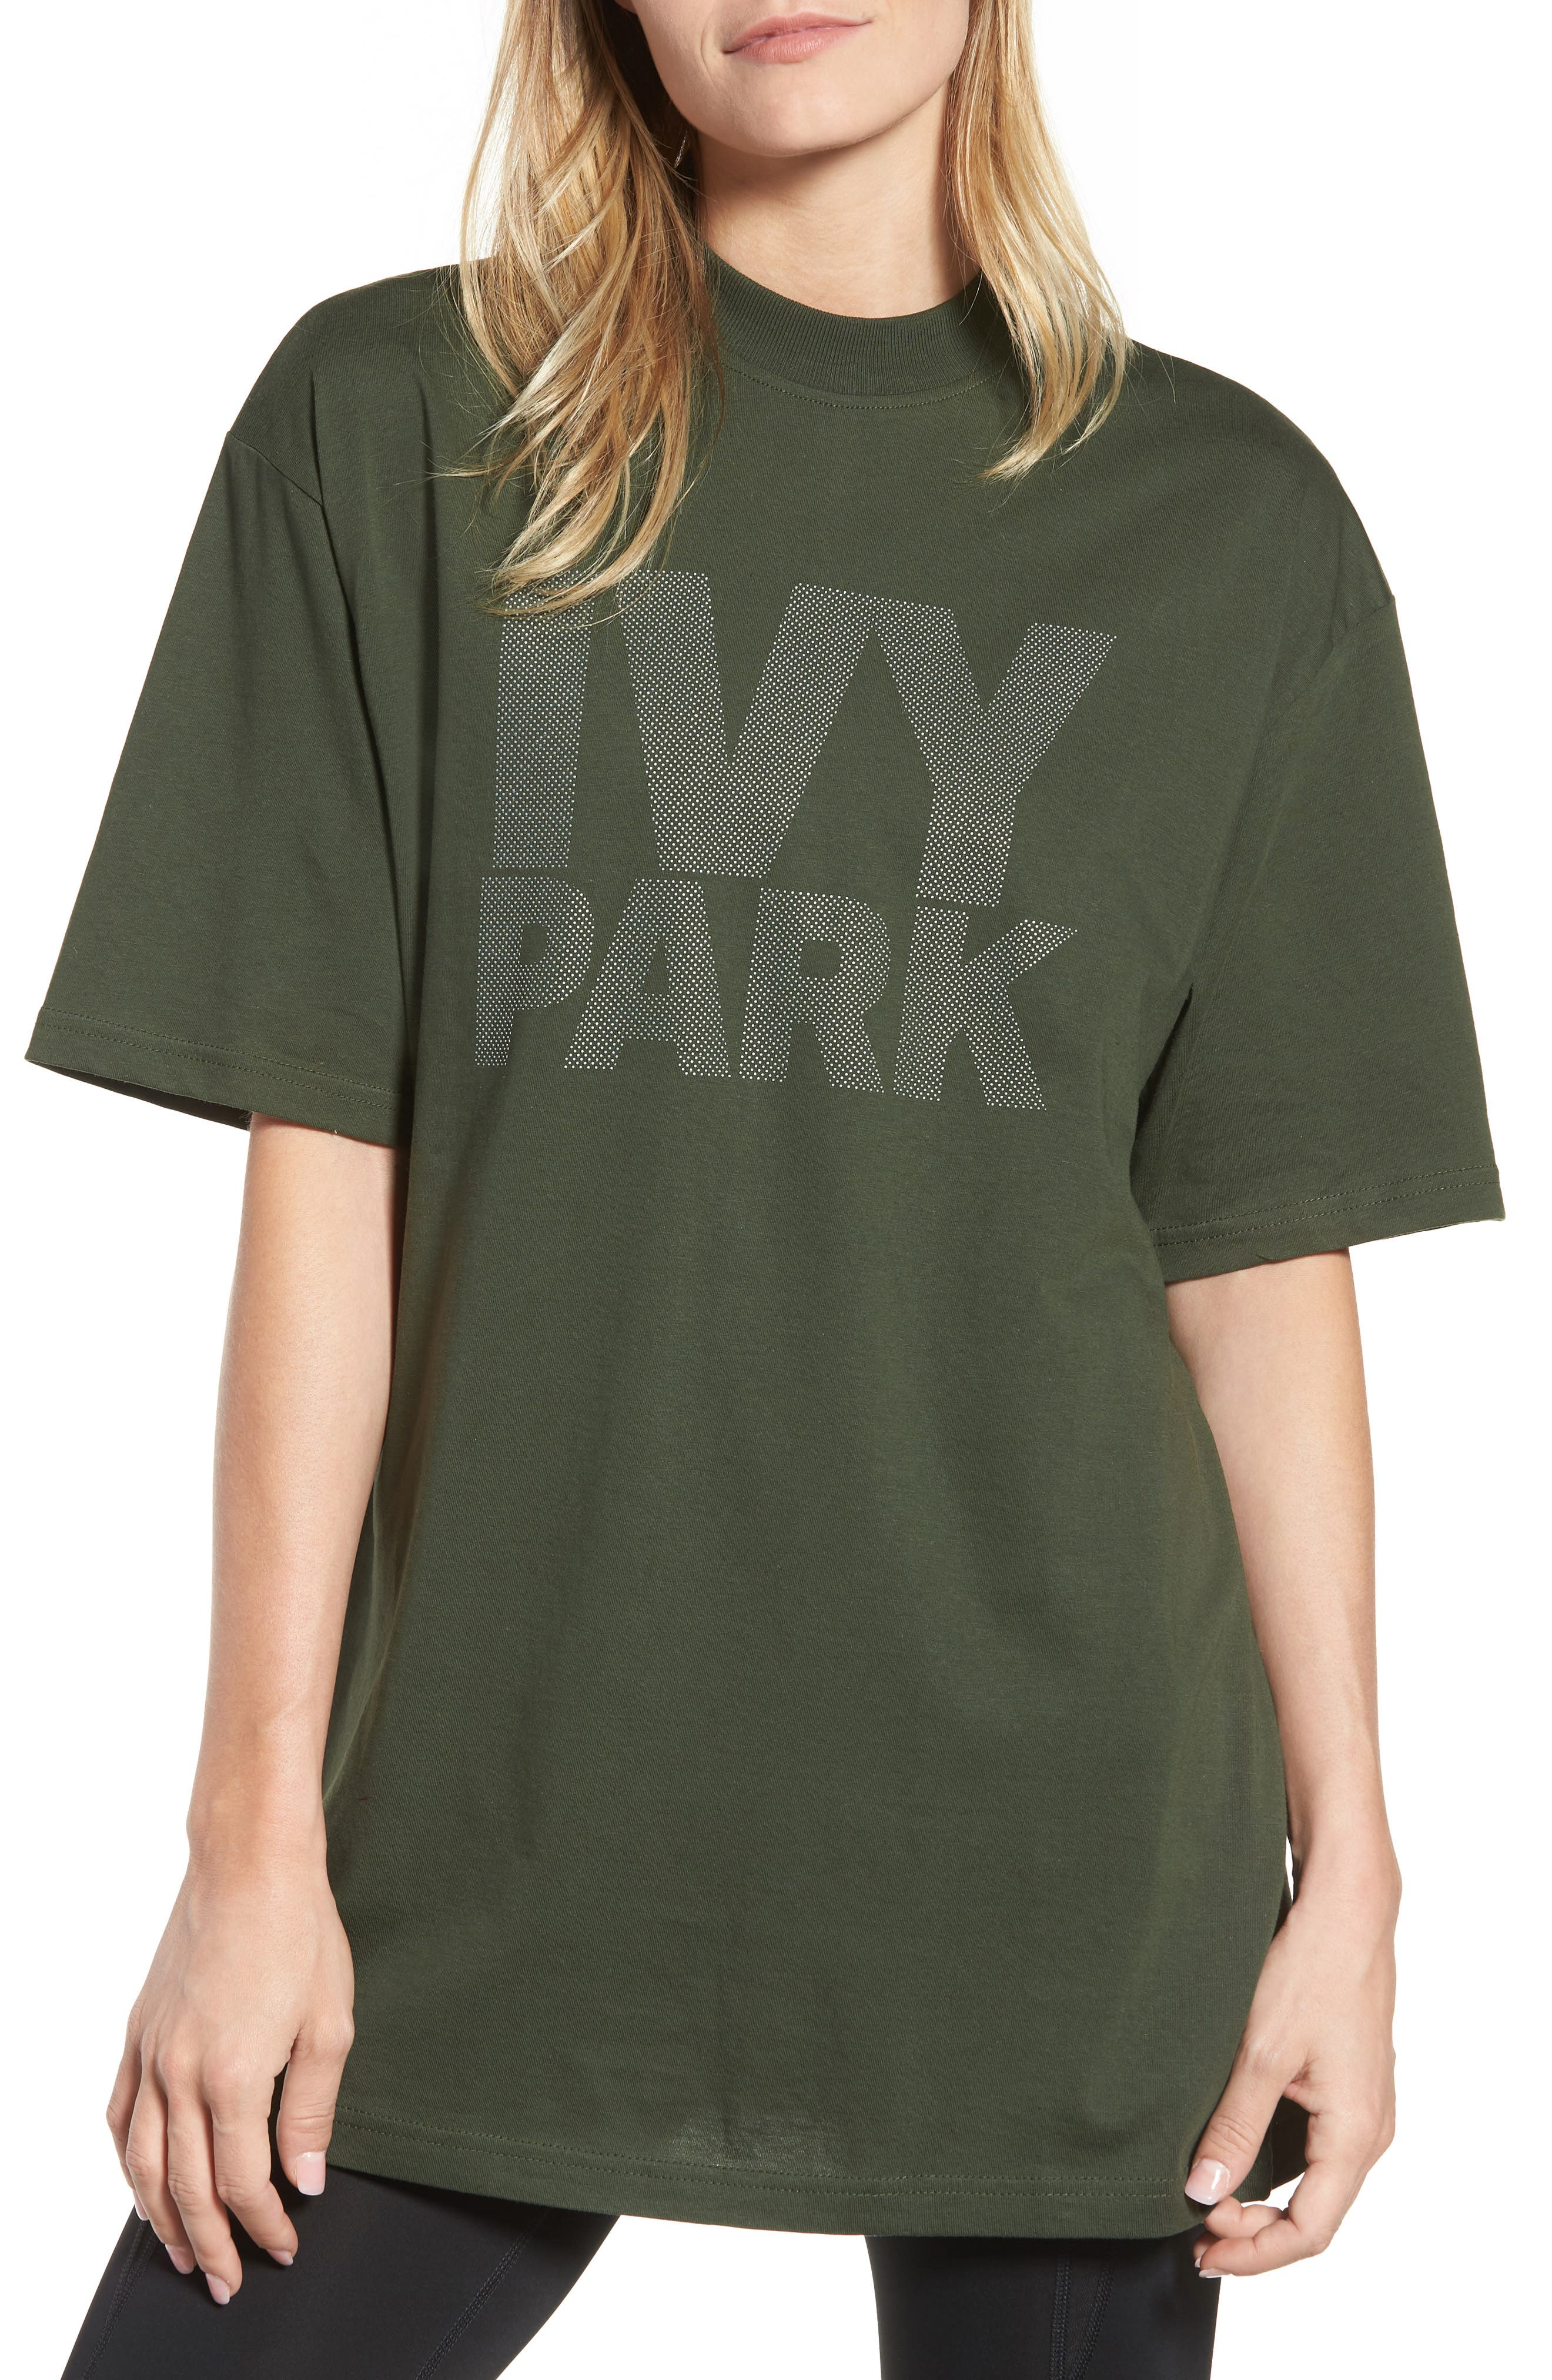 IVY PARK® Dotted Logo Oversized Tee